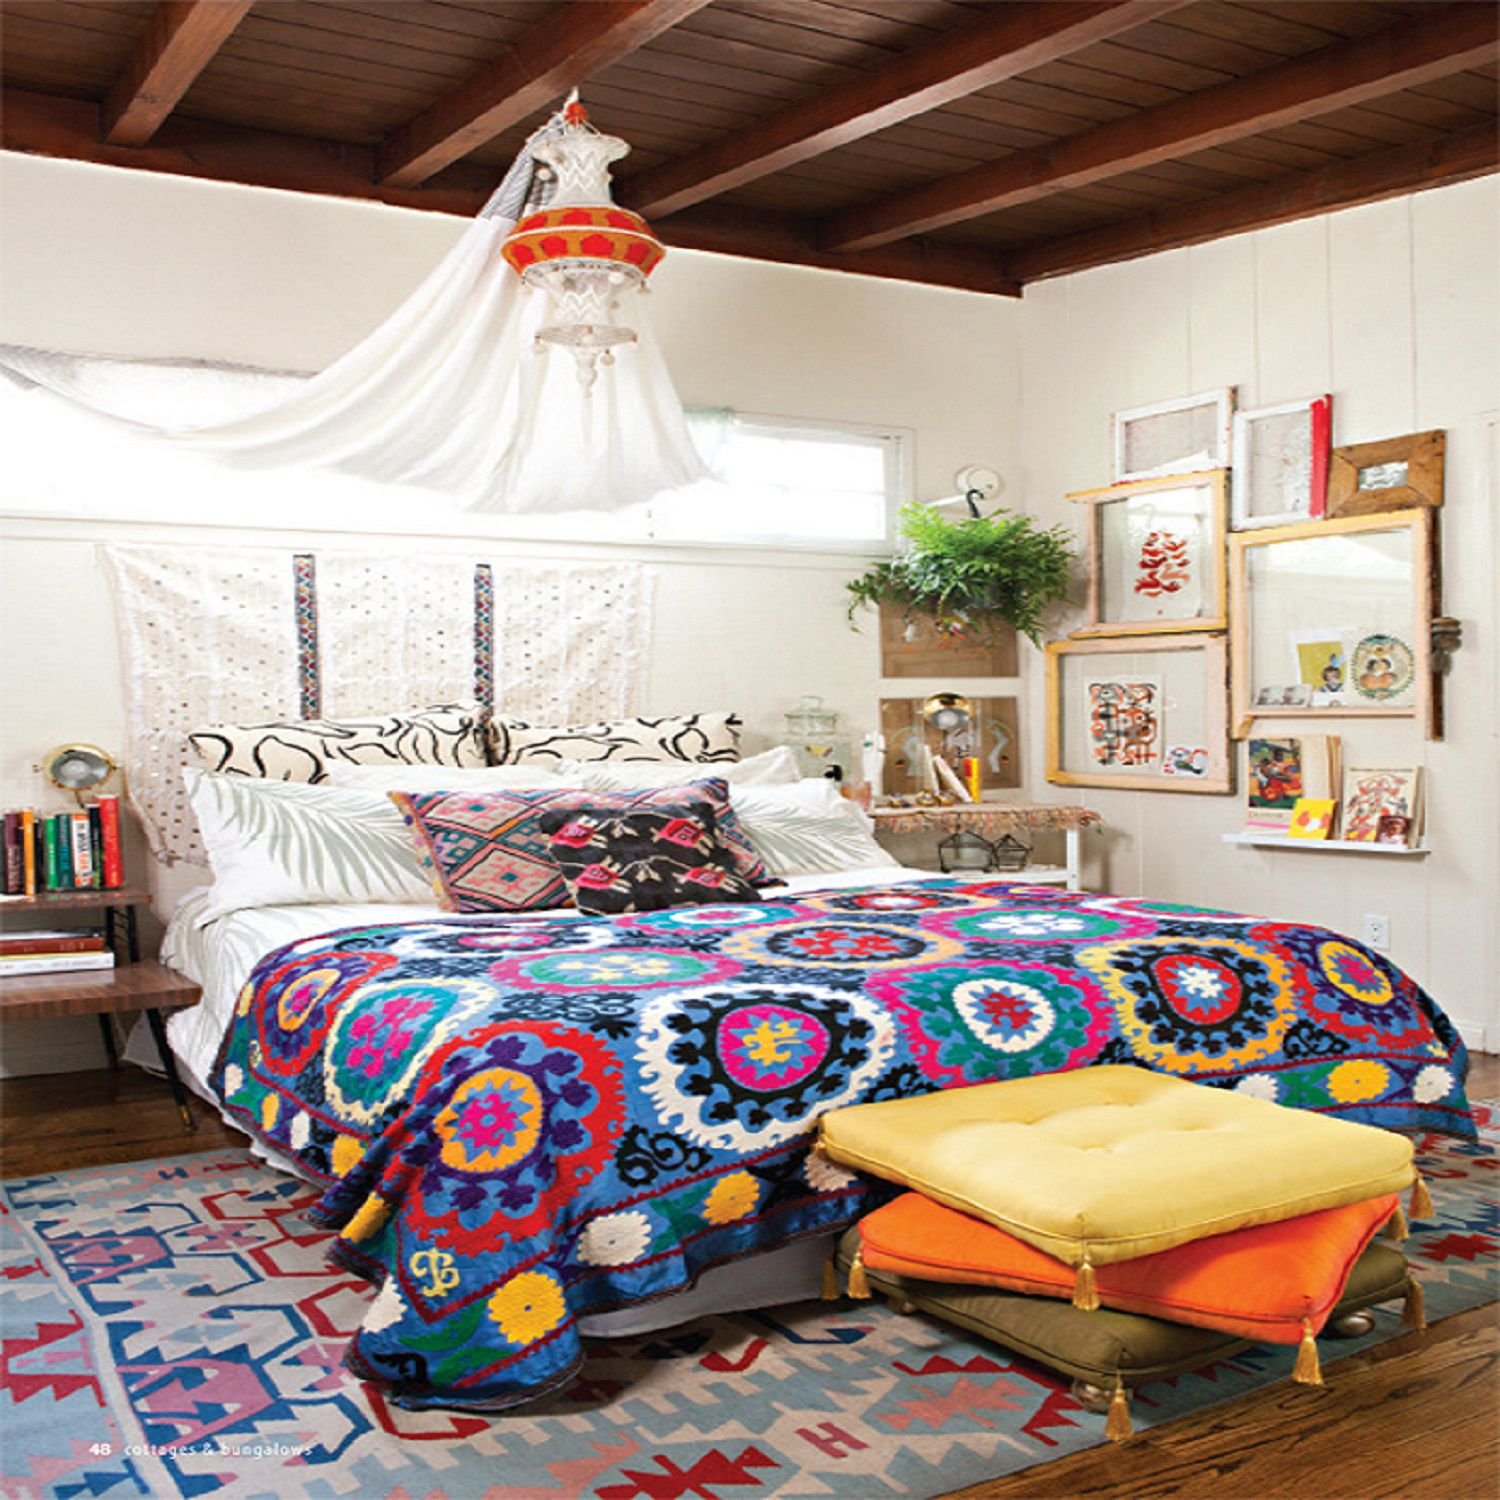 Small Bedroom Ideas Home Design: Beautiful Boho Bedroom Decorating Ideas And Photos